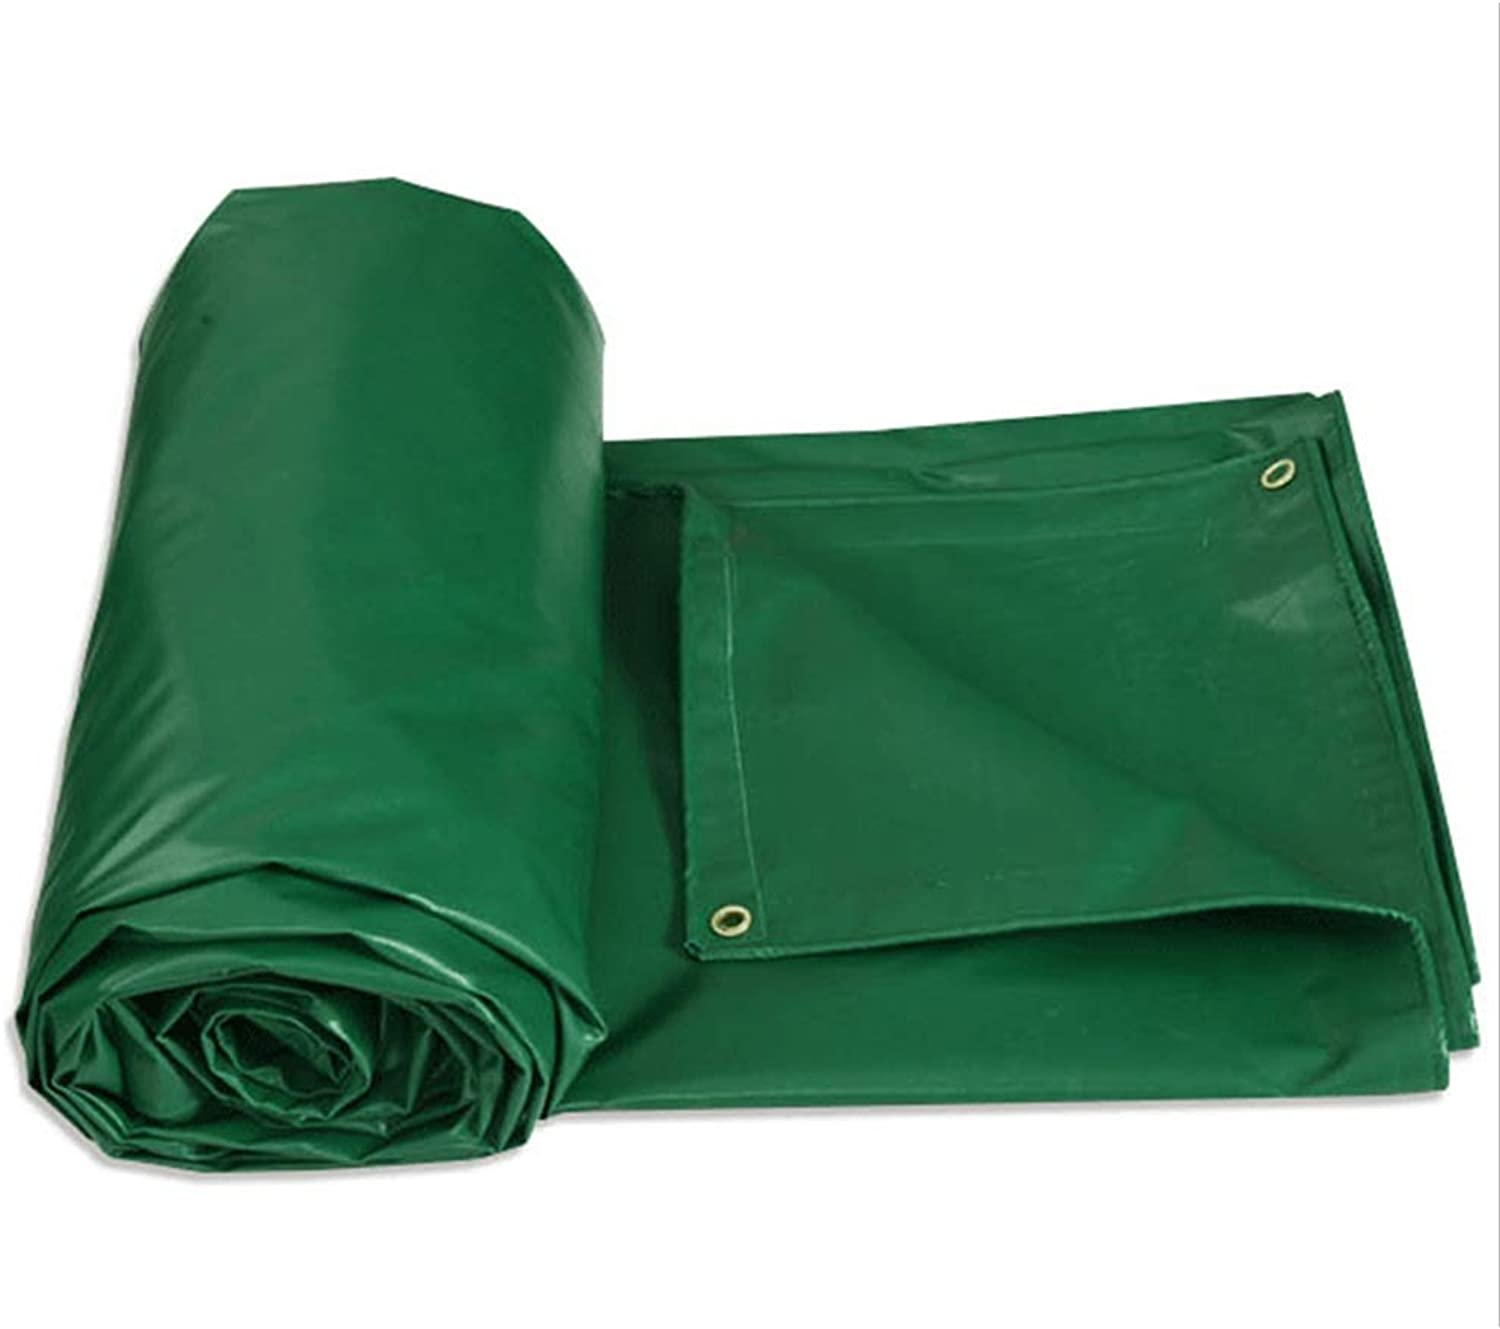 HXLG Thickened Waterproof Cover Truck Waterproof Sunscreen Tarpaulin Outdoor Car Tarp Ground Sheet Cover (color   Green, Size   1.85x1.4m)